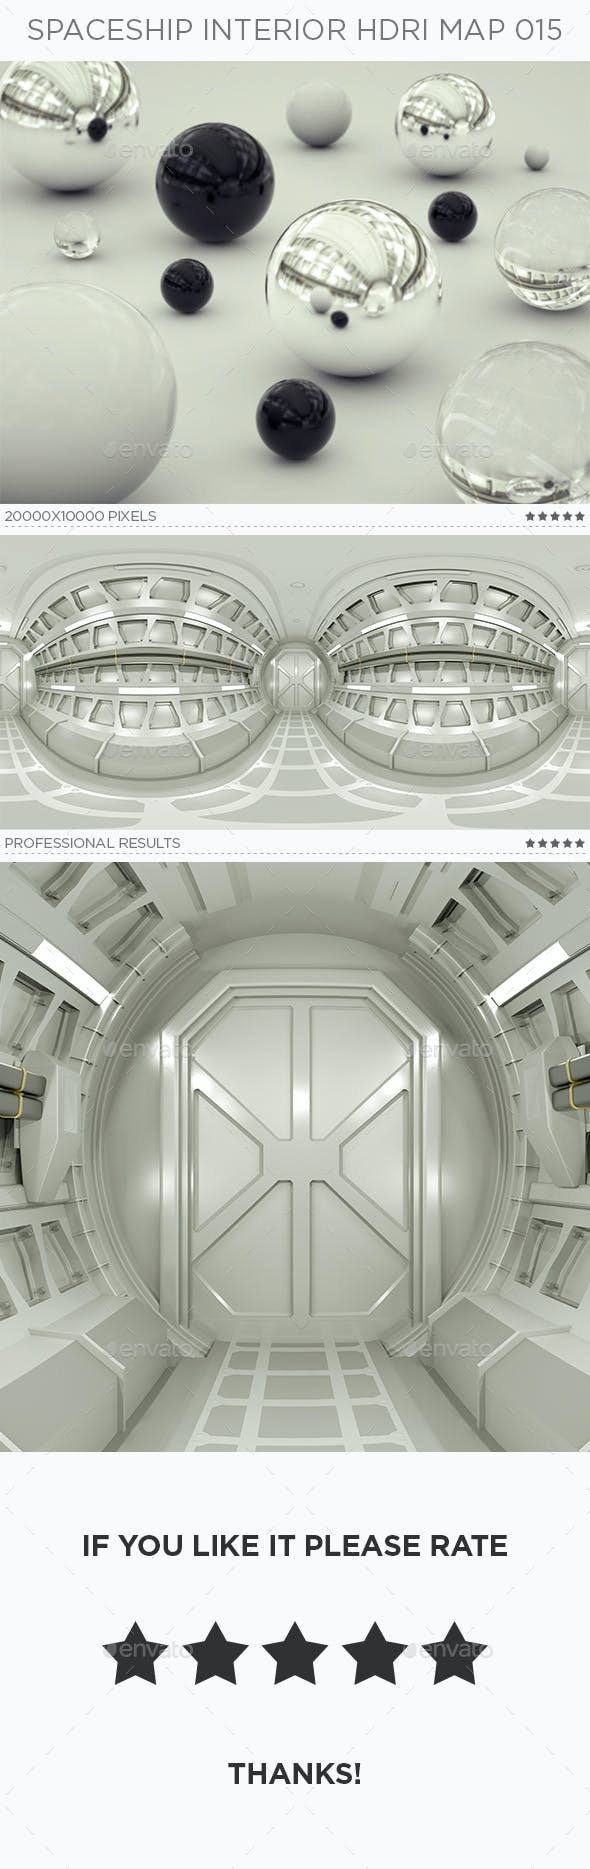 Spaceship Interior HDRi Map 015 - 3DOcean Item for Sale